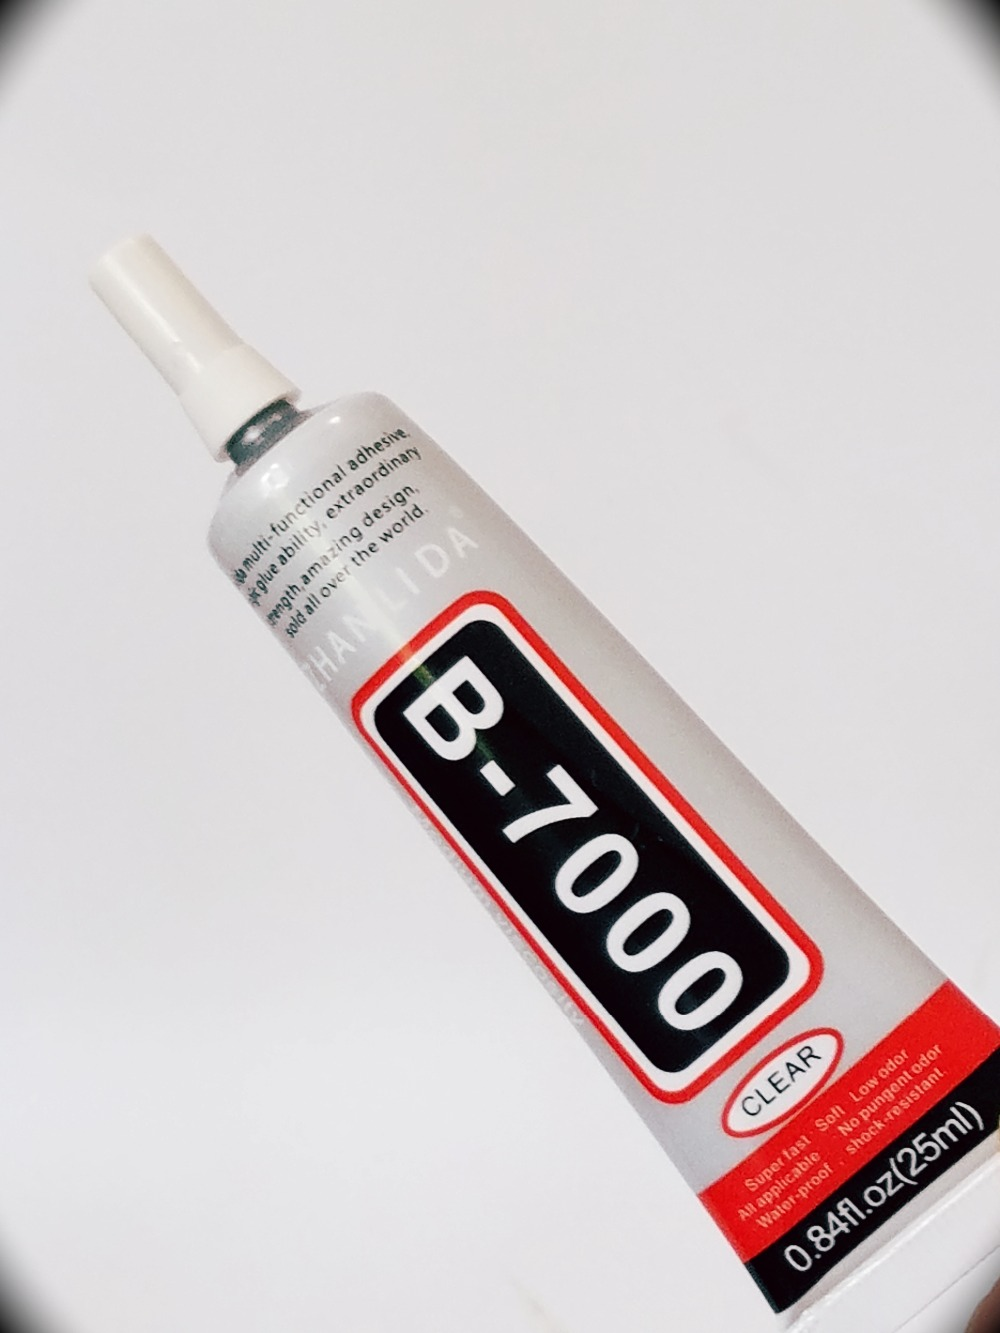 ZHANLIDA 25ml B-7000 UV glue LOCA Liquid optical clear adhesive Transparent for Cellphones LCD repair Hot sale image